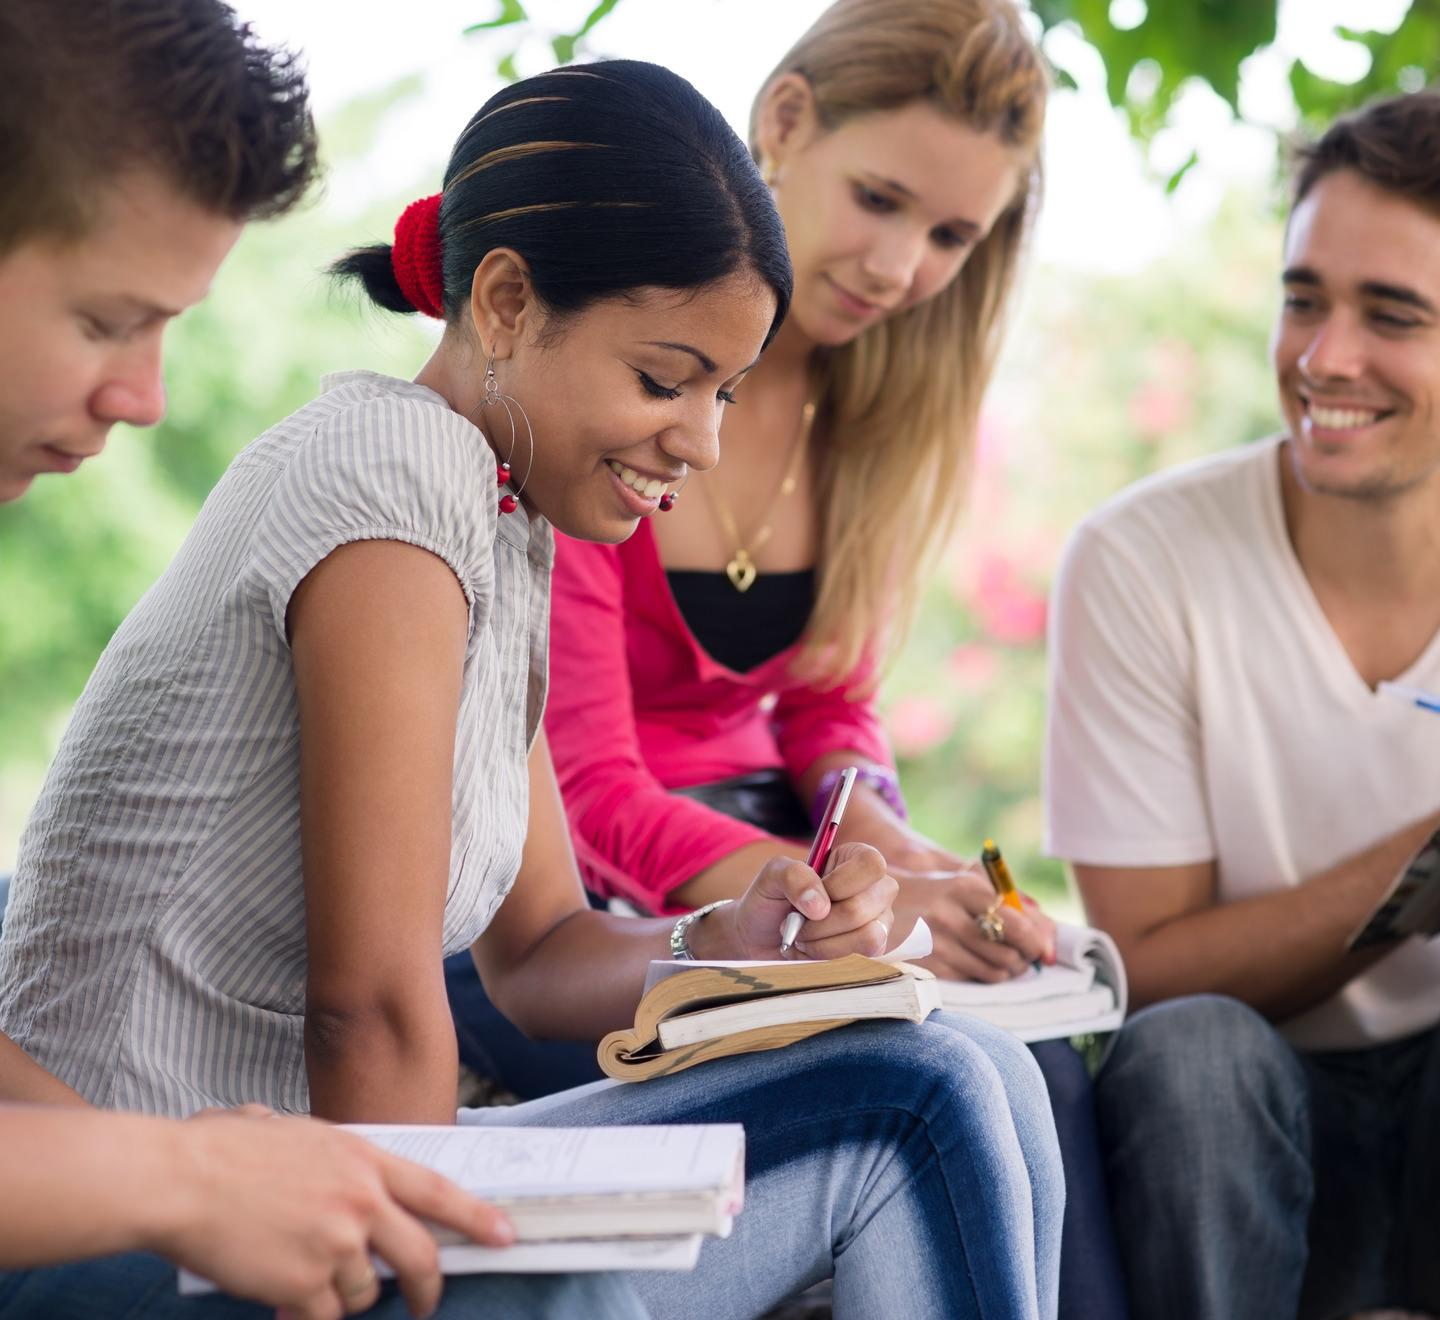 homework help college students That's probably the most common problem that students who need homework help online often face very few services that offer homework help for college students have prices that are actually affordable for college students.